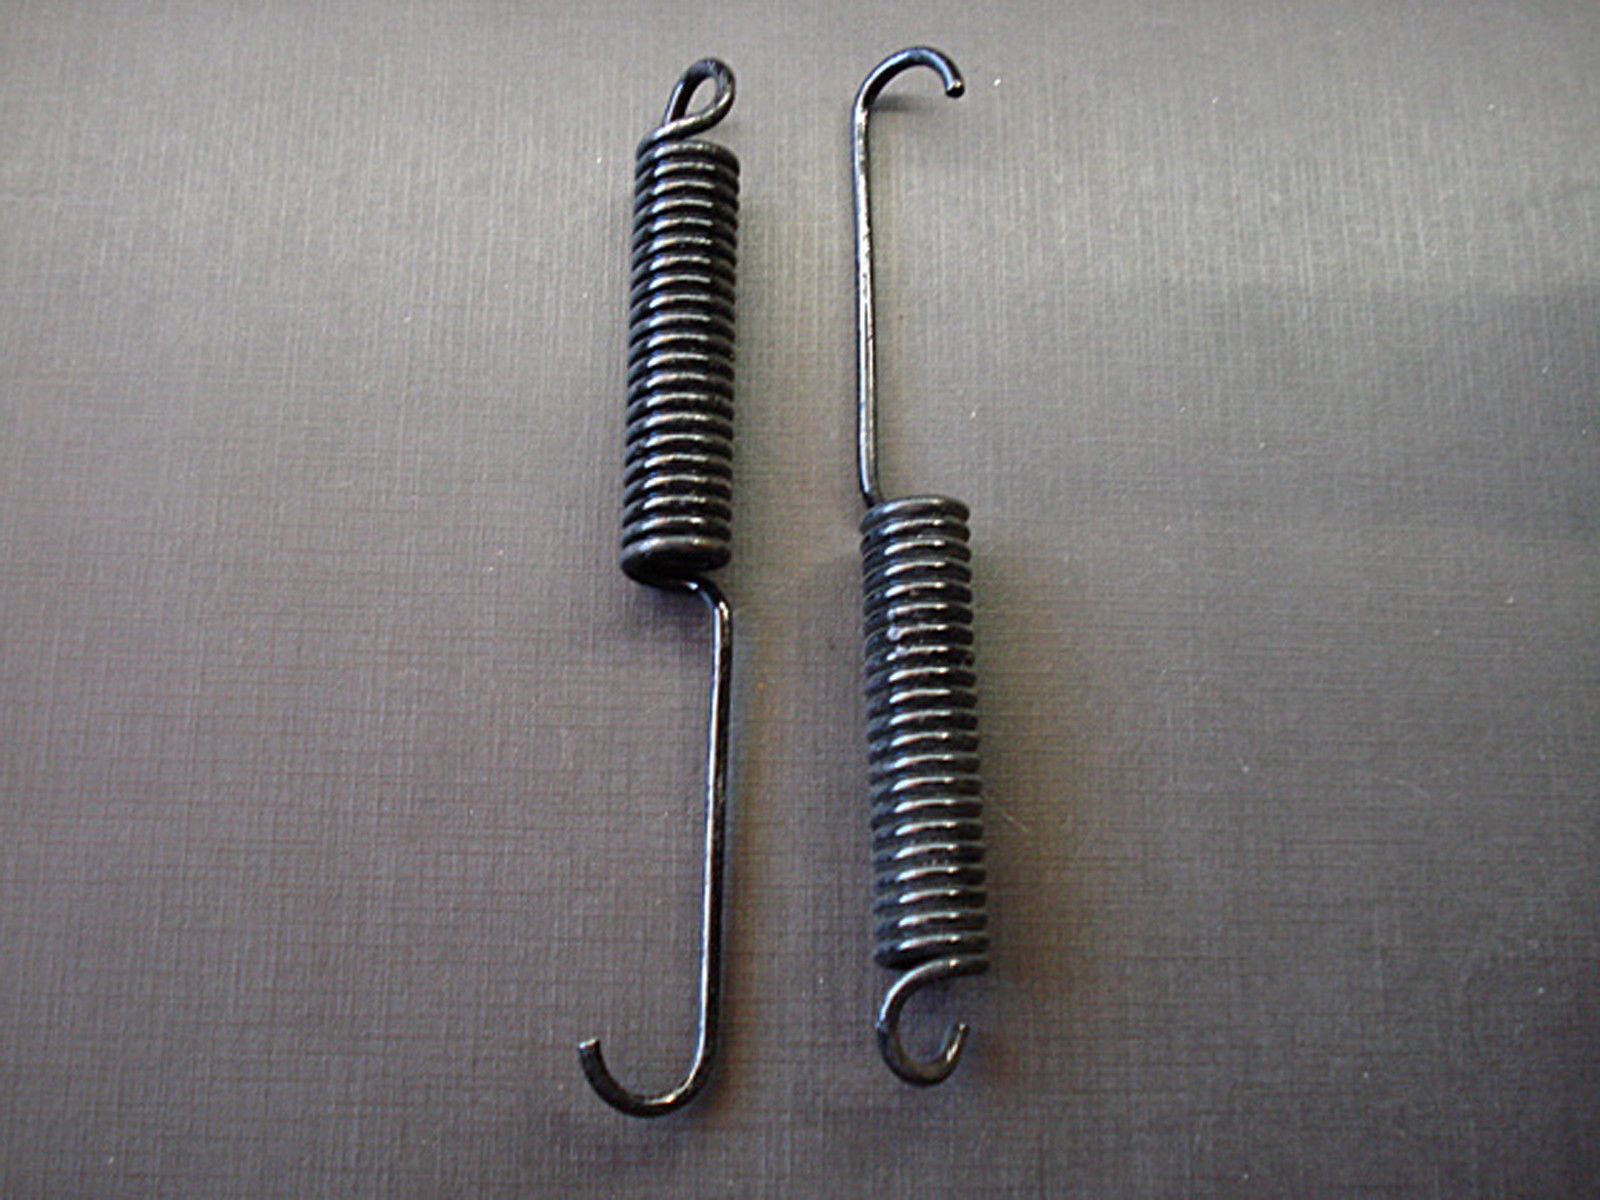 2 pcs 65-68 Ford 67-68 Mercury front door lower hinge repair springs NOS